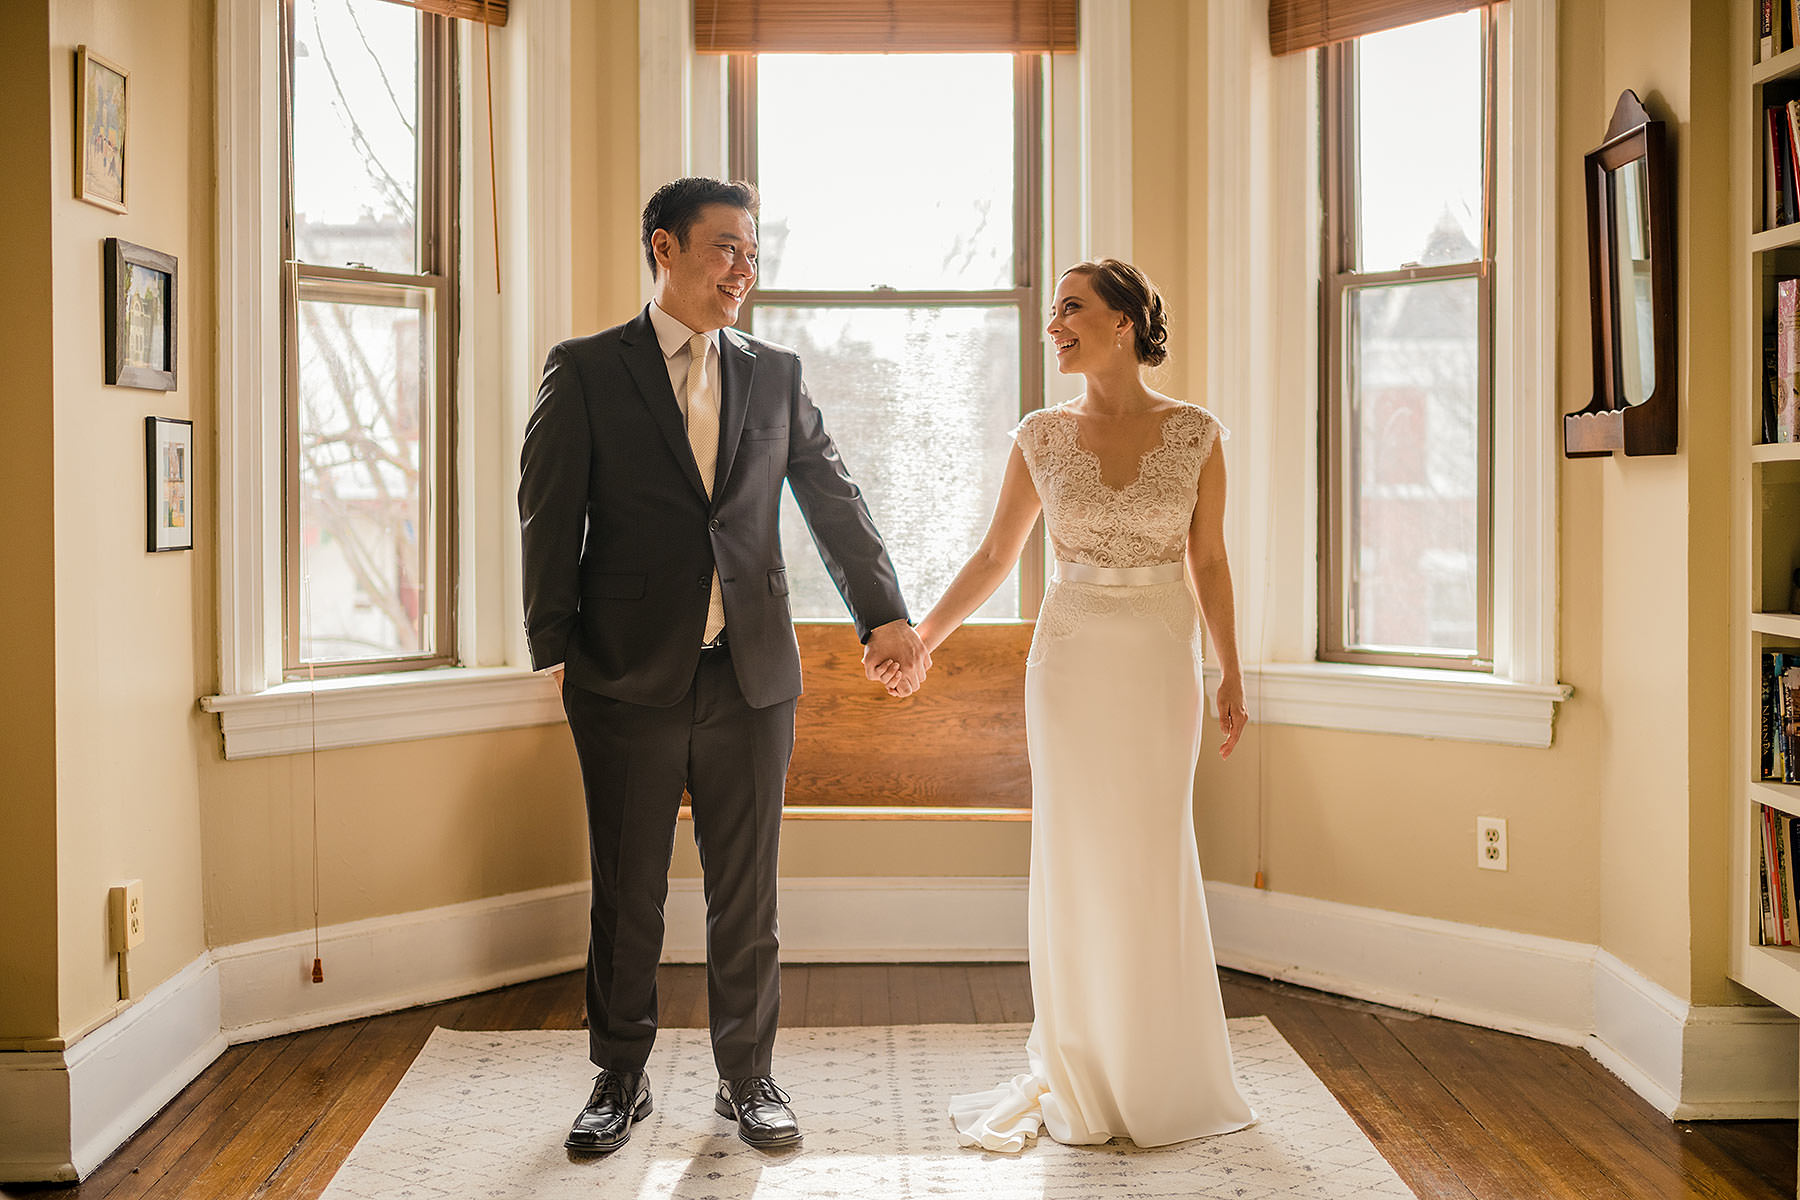 bride and groom take wedding portraits in their new home during cozy dc winter wedding by Washington DC Wedding Photographer Adam Mason